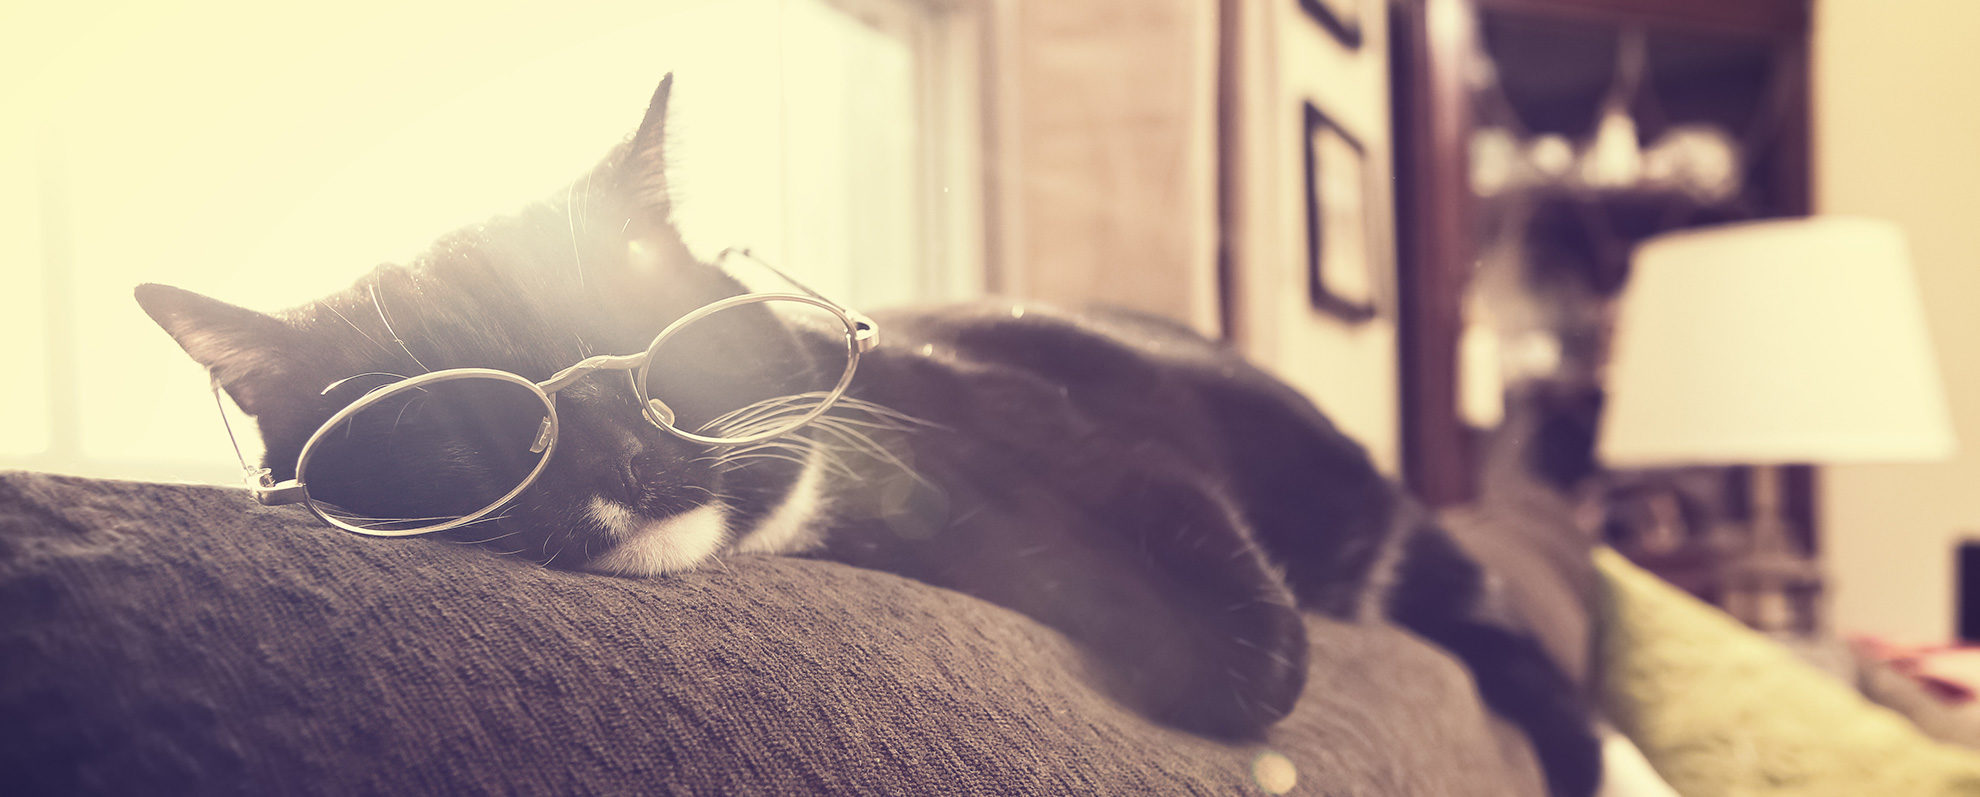 black cat wearing wire glasses frames and napping